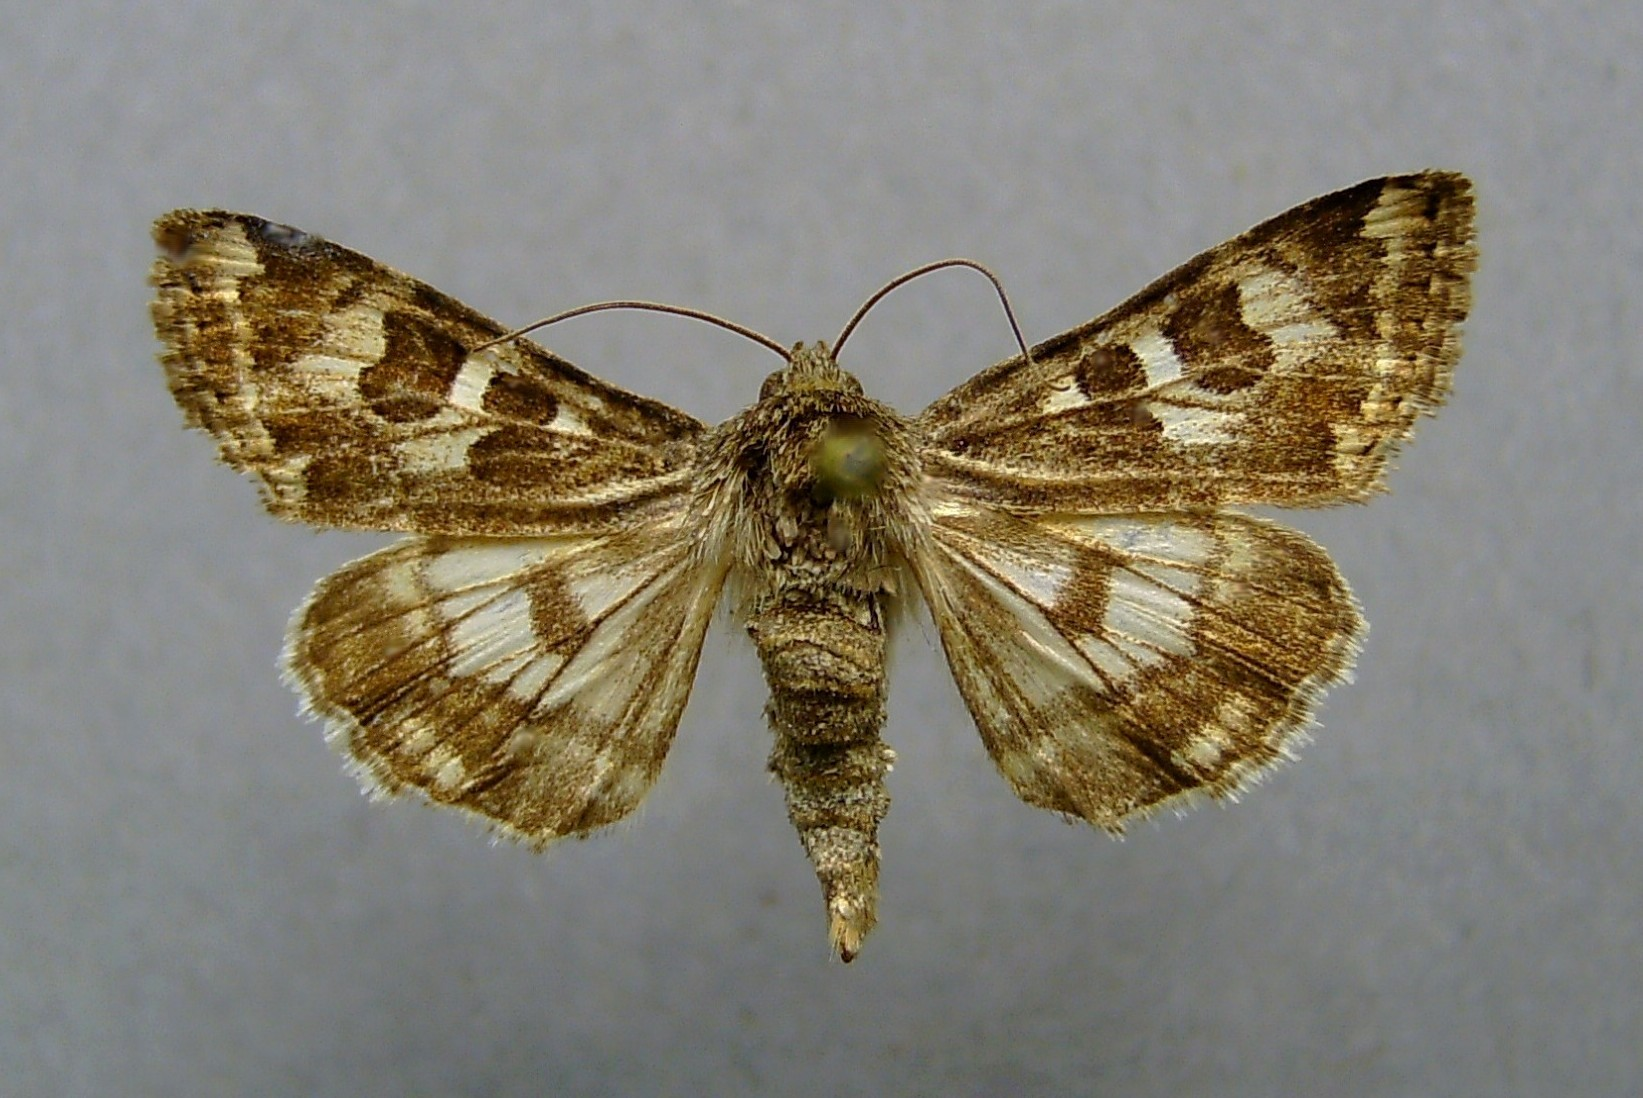 Spotted clover moth